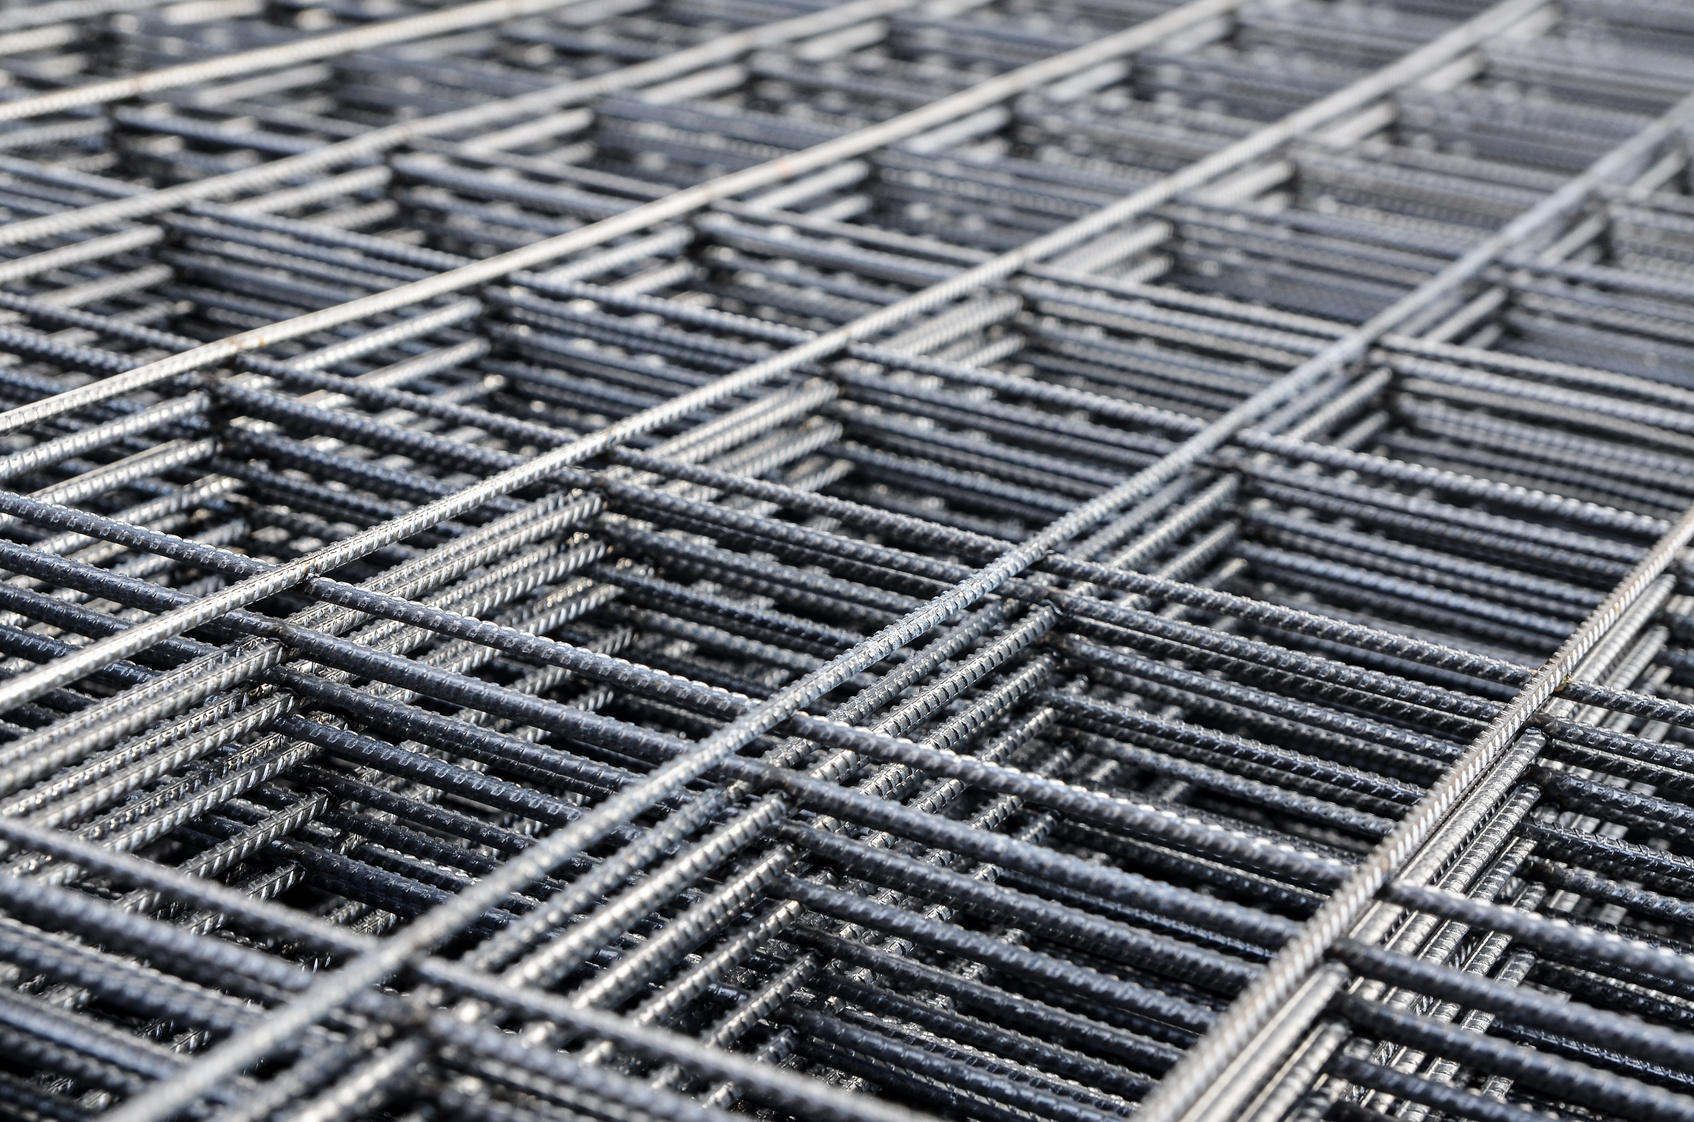 Steel reinforcing mesh for concreting construction.